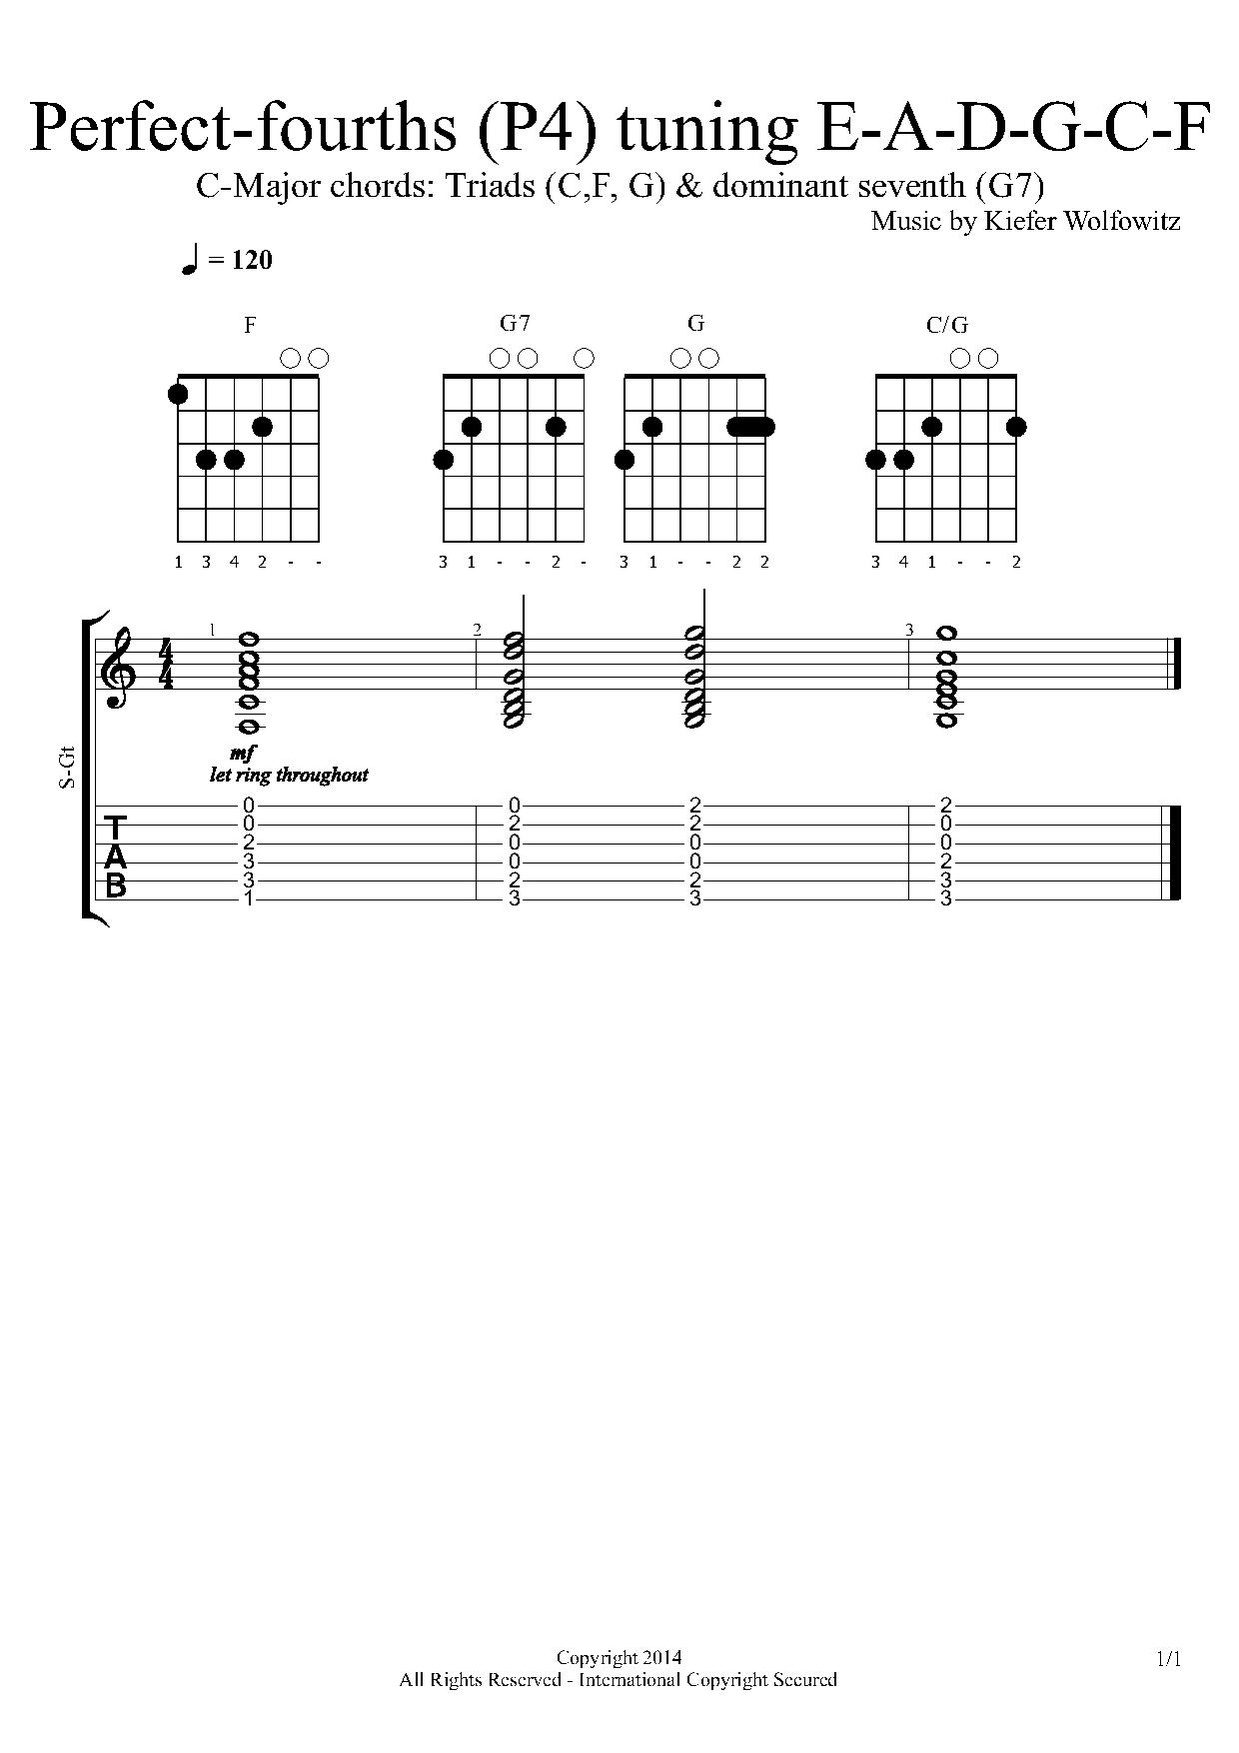 Major triads and dominant seventh chords in all perfect-fourths tuning for the major scale on C: C major, F major, G major, and G7 (major-minor seventh with dominant function).